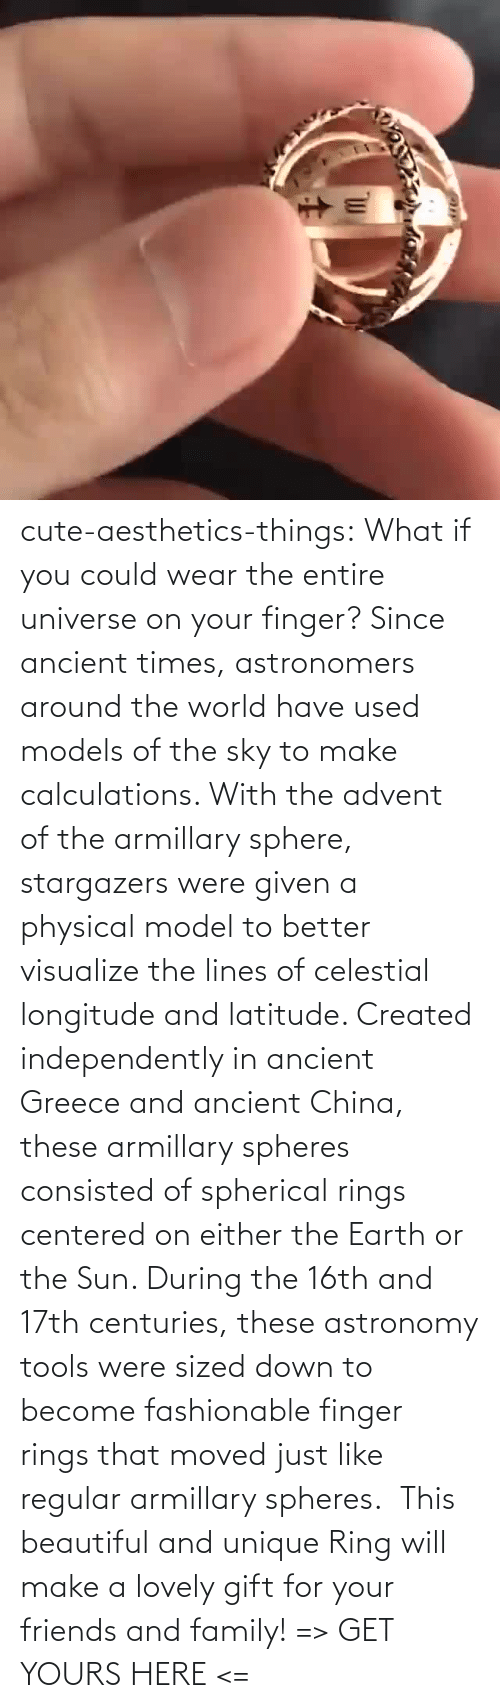 yours: cute-aesthetics-things: What if you could wear the entire universe on your finger? Since ancient times, astronomers around the world have used models of the sky to make calculations. With the advent of the armillary sphere, stargazers were given a physical model to better visualize the lines of celestial longitude and latitude. Created independently in ancient Greece and ancient China, these armillary spheres consisted of spherical rings centered on either the Earth or the Sun. During the 16th and 17th centuries, these astronomy tools were sized down to become fashionable finger rings that moved just like regular armillary spheres.  This beautiful and unique Ring will make a lovely gift for your friends and family! => GET YOURS HERE <=